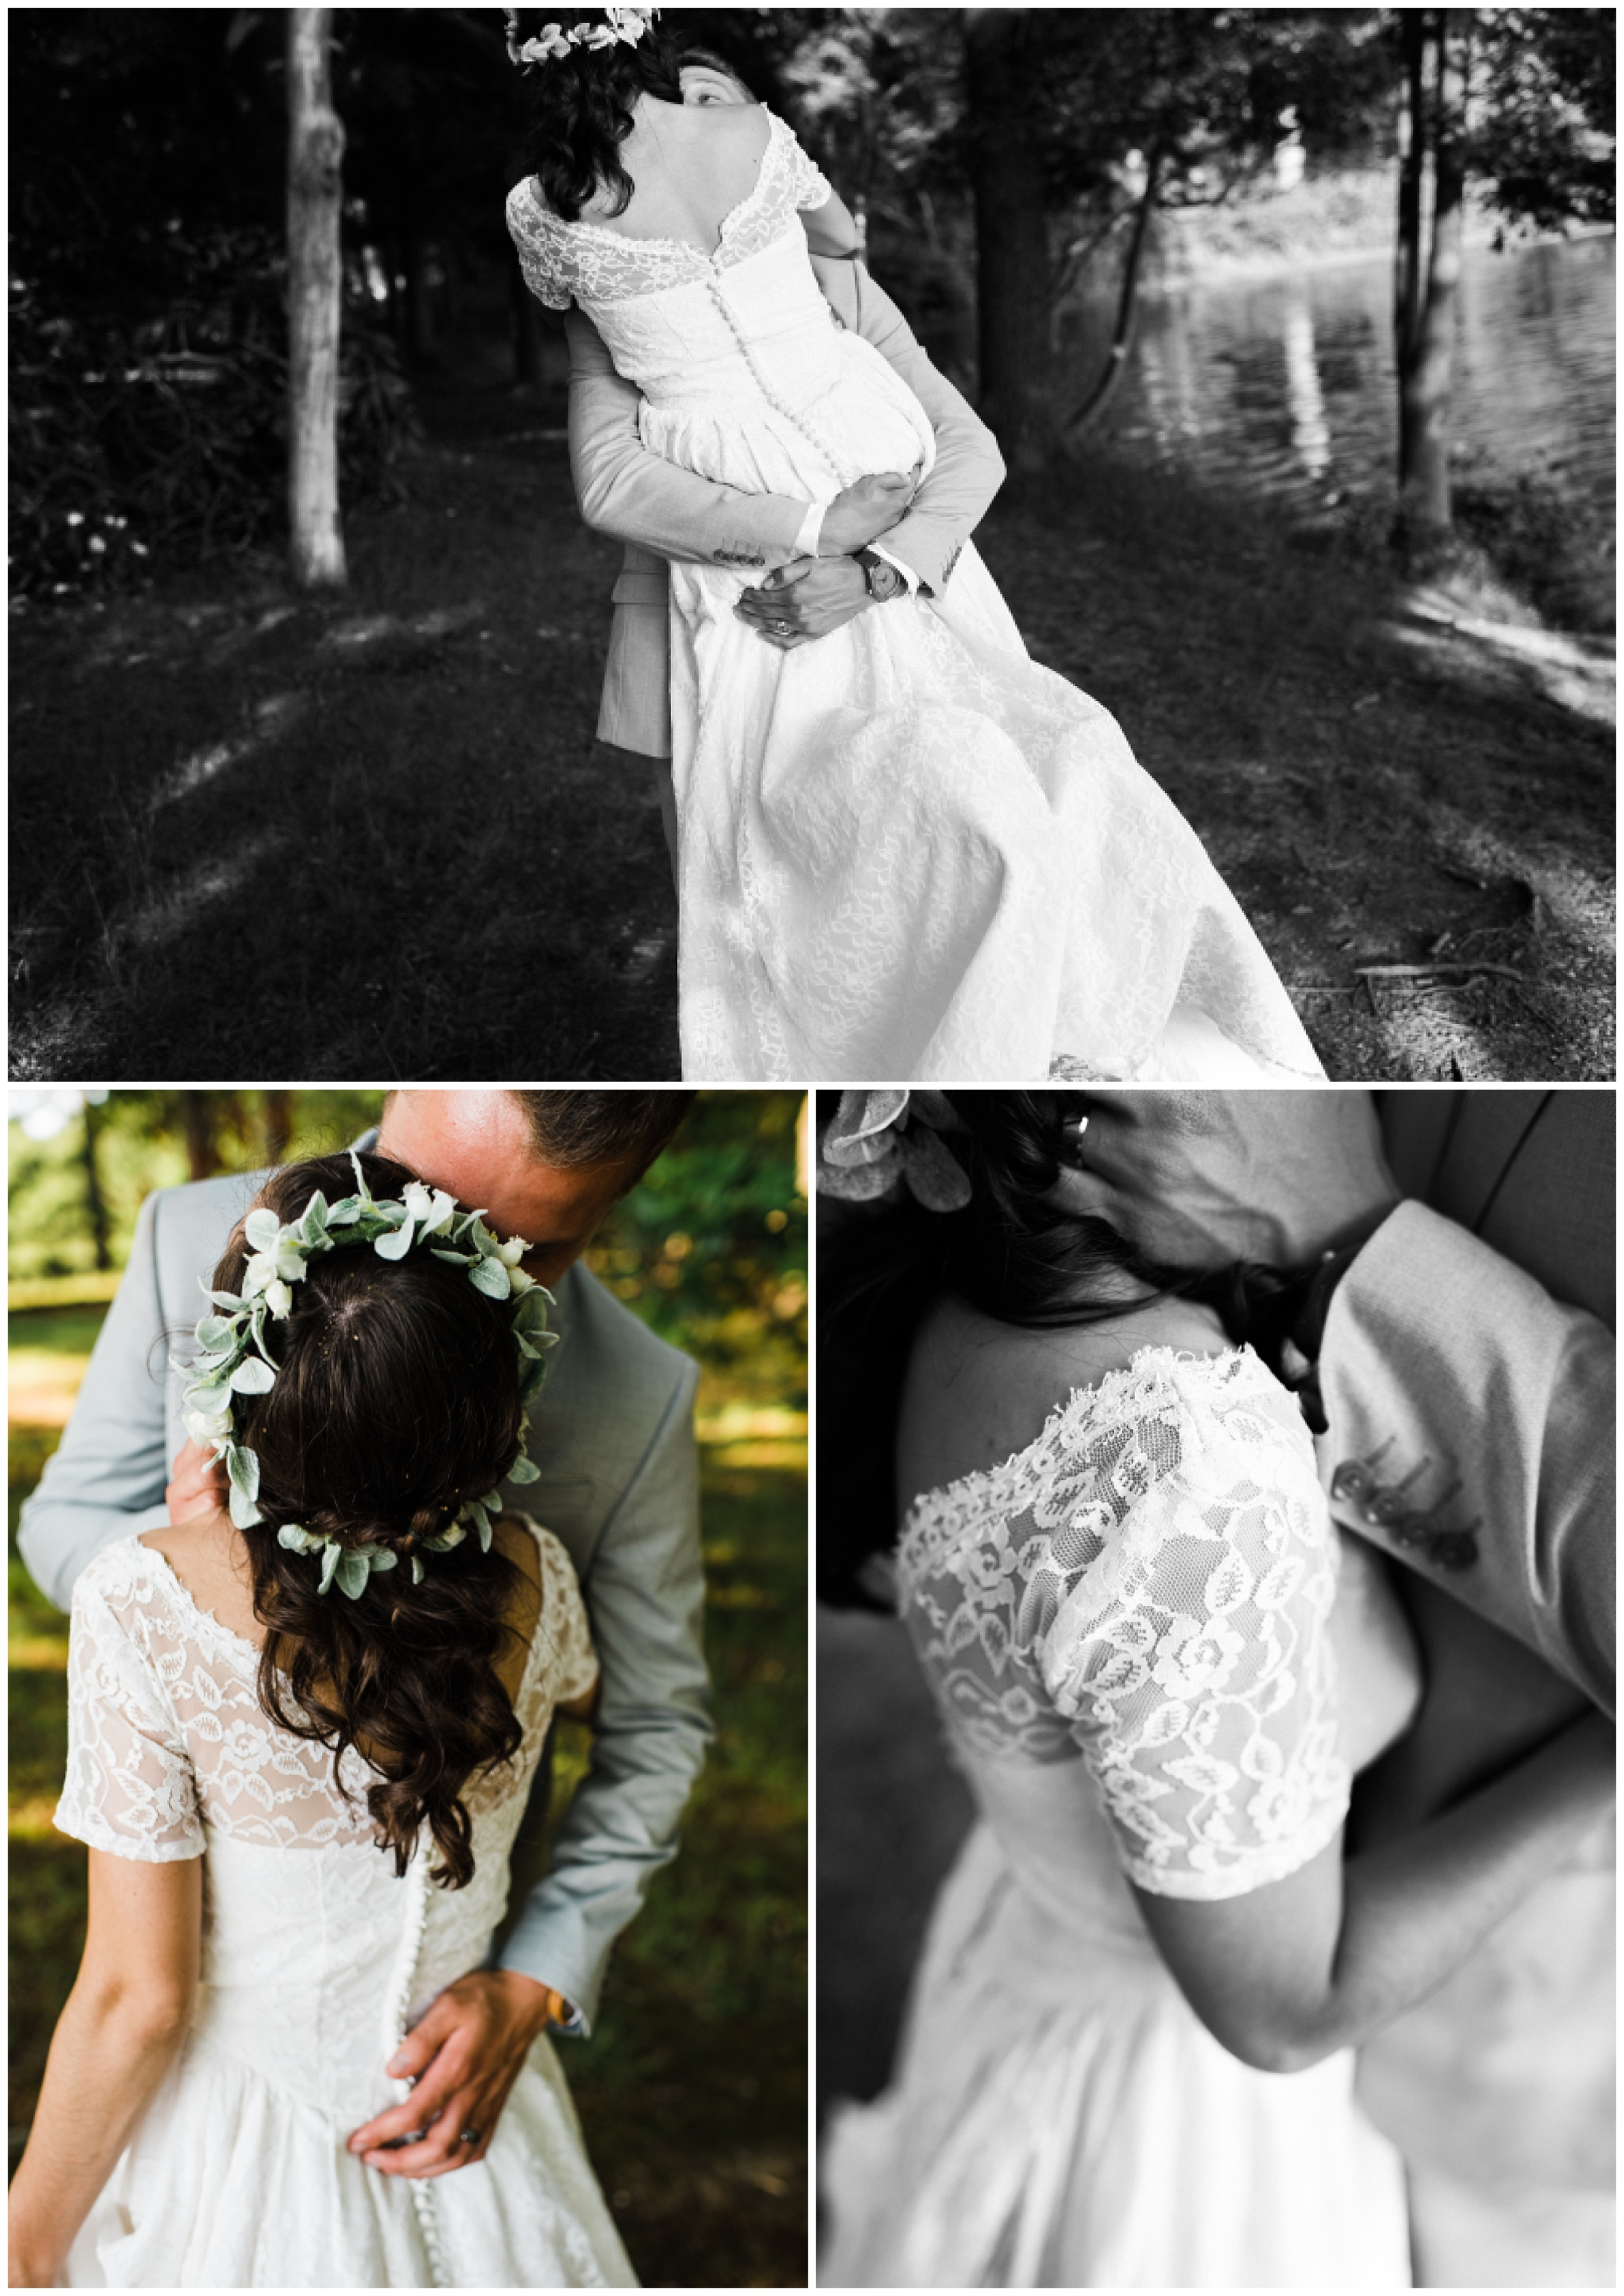 Easterday Creative | Adventurous wedding photographer and storyteller | Wedding Dress Inspiration 2019